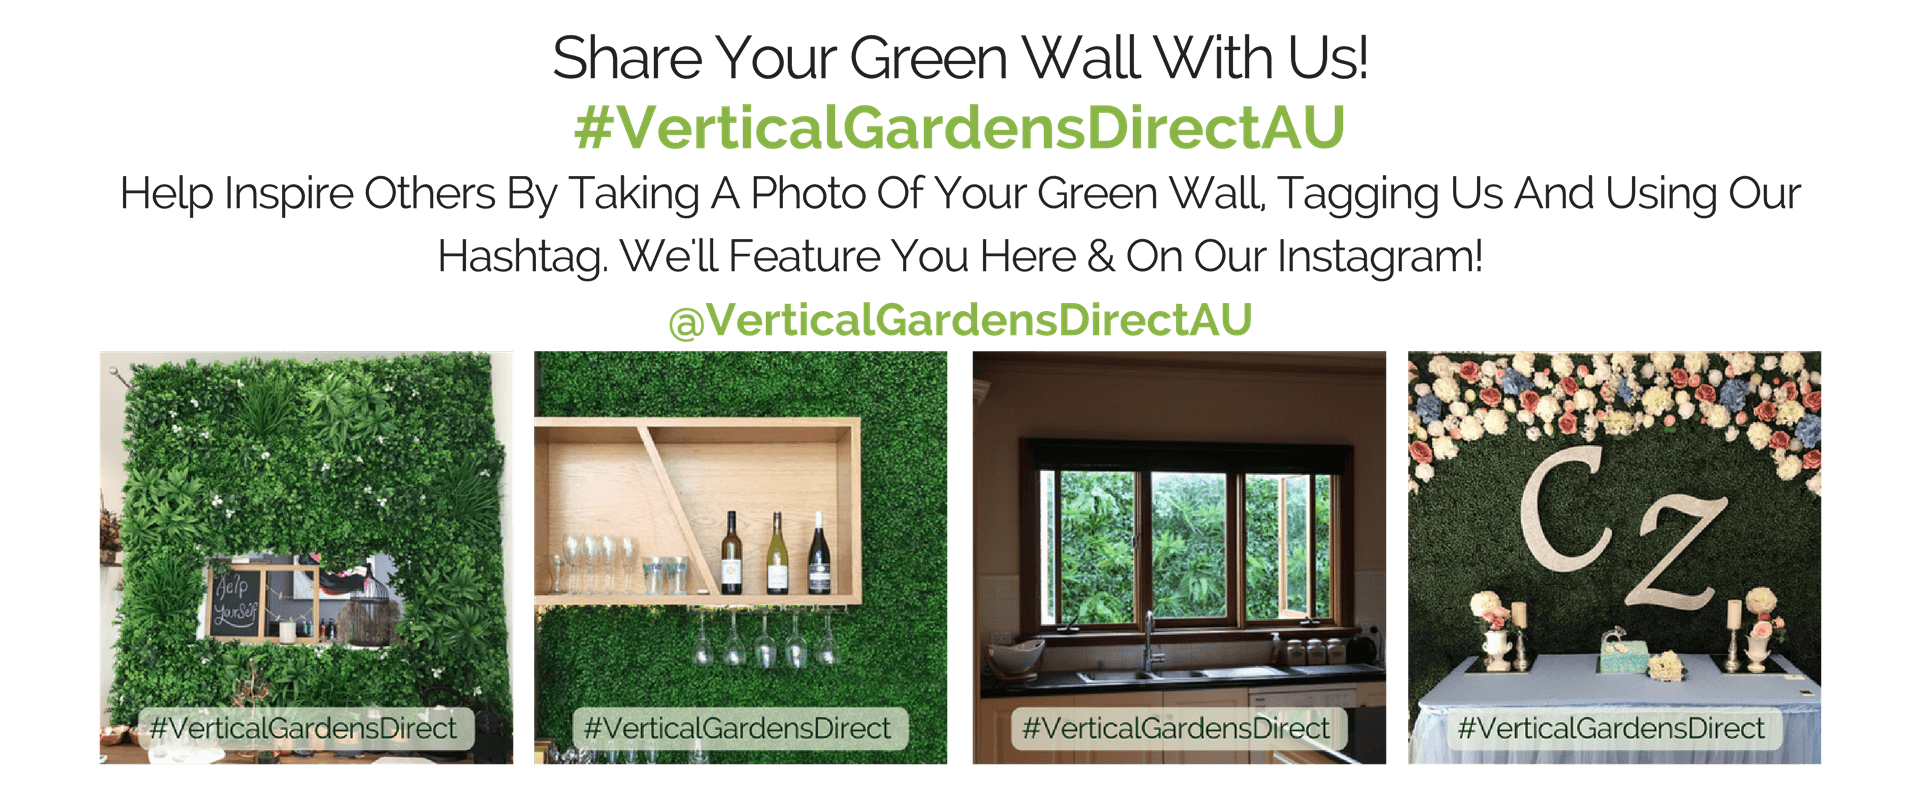 #VerticalGardensDirectAU Vertical Gardens Direct Social Media